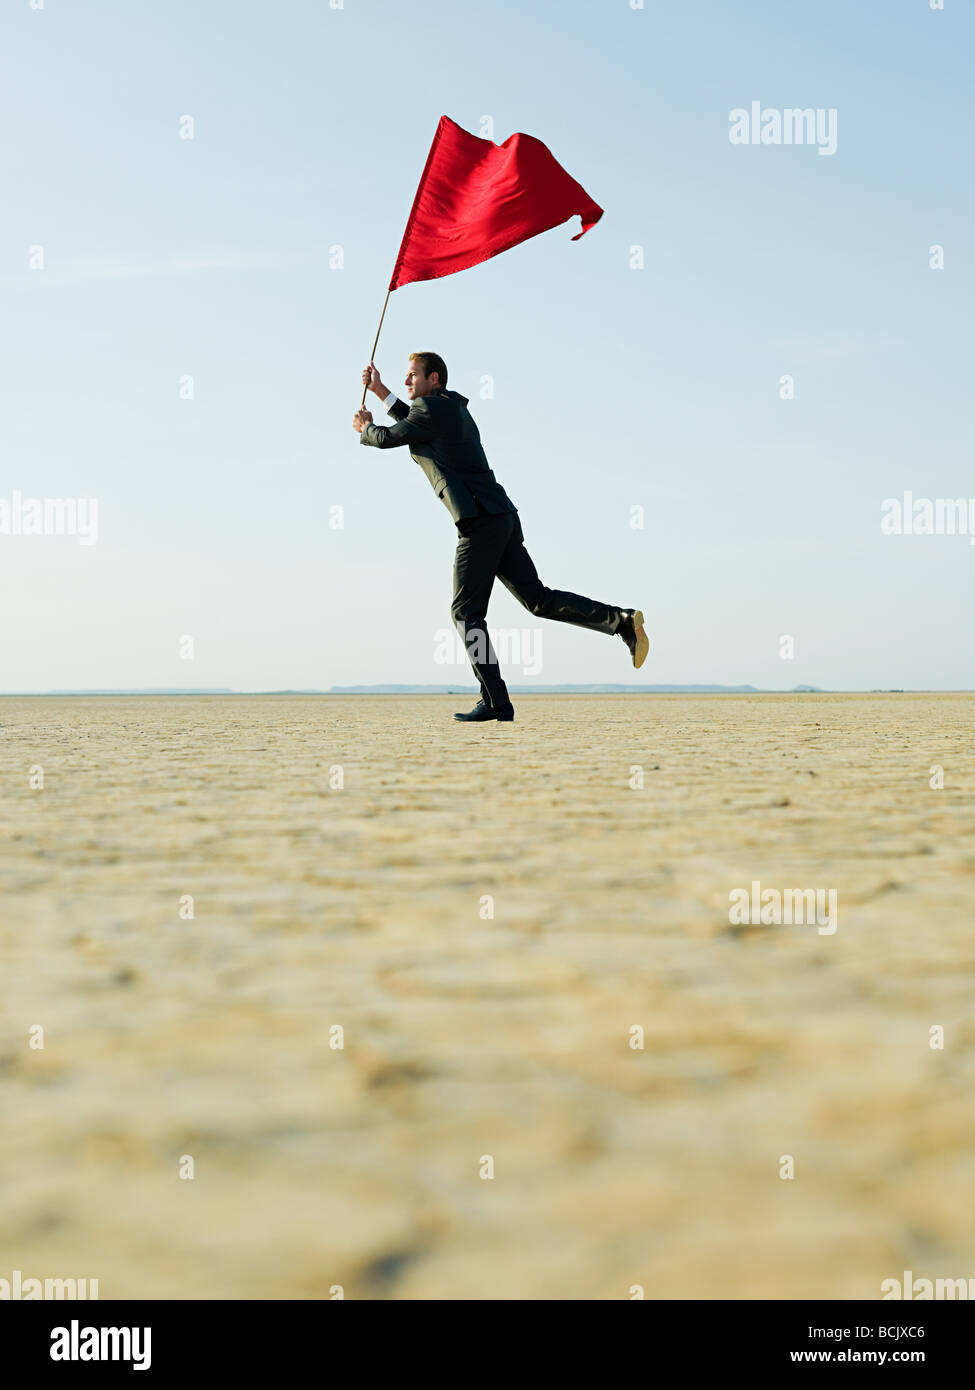 Businessman waving a red flag - Stock Image